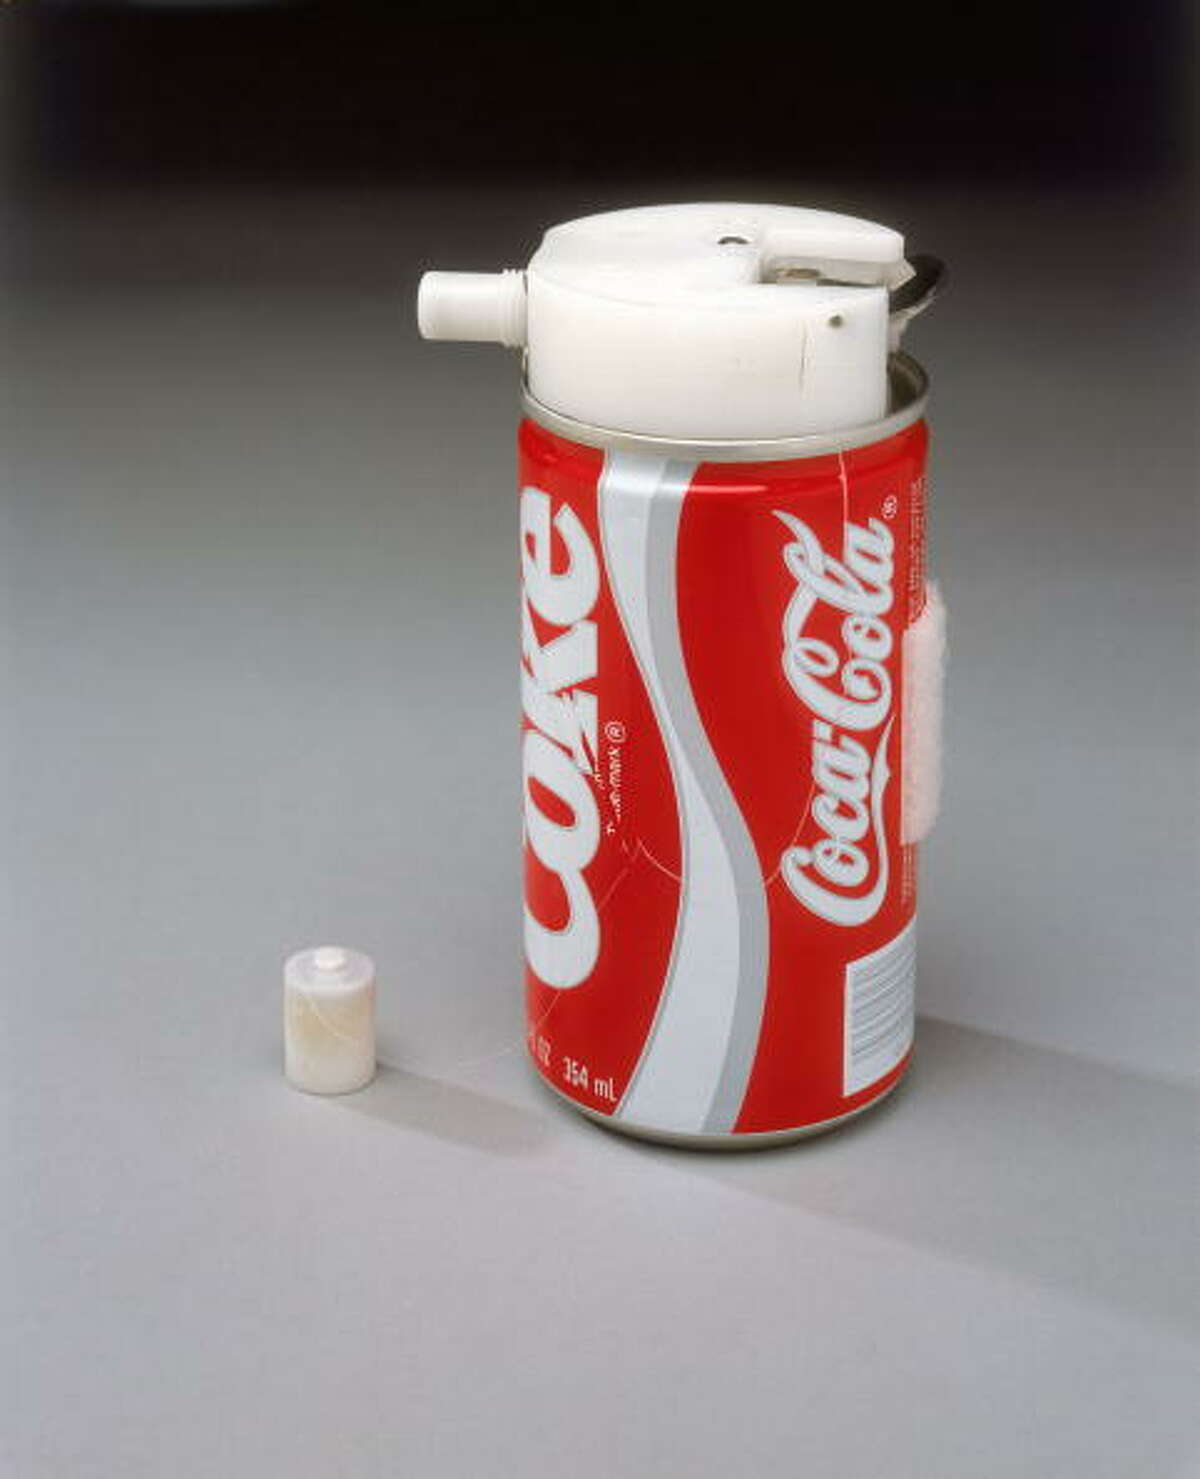 Coke v. Pepsi war When Coca-Cola made a deal with NASA astronauts to test their new $250,000 zero-gravity can design, Pepsi quickly did the same. The two soft drinks were sent into space in Challenger's week-long mission in 1985.